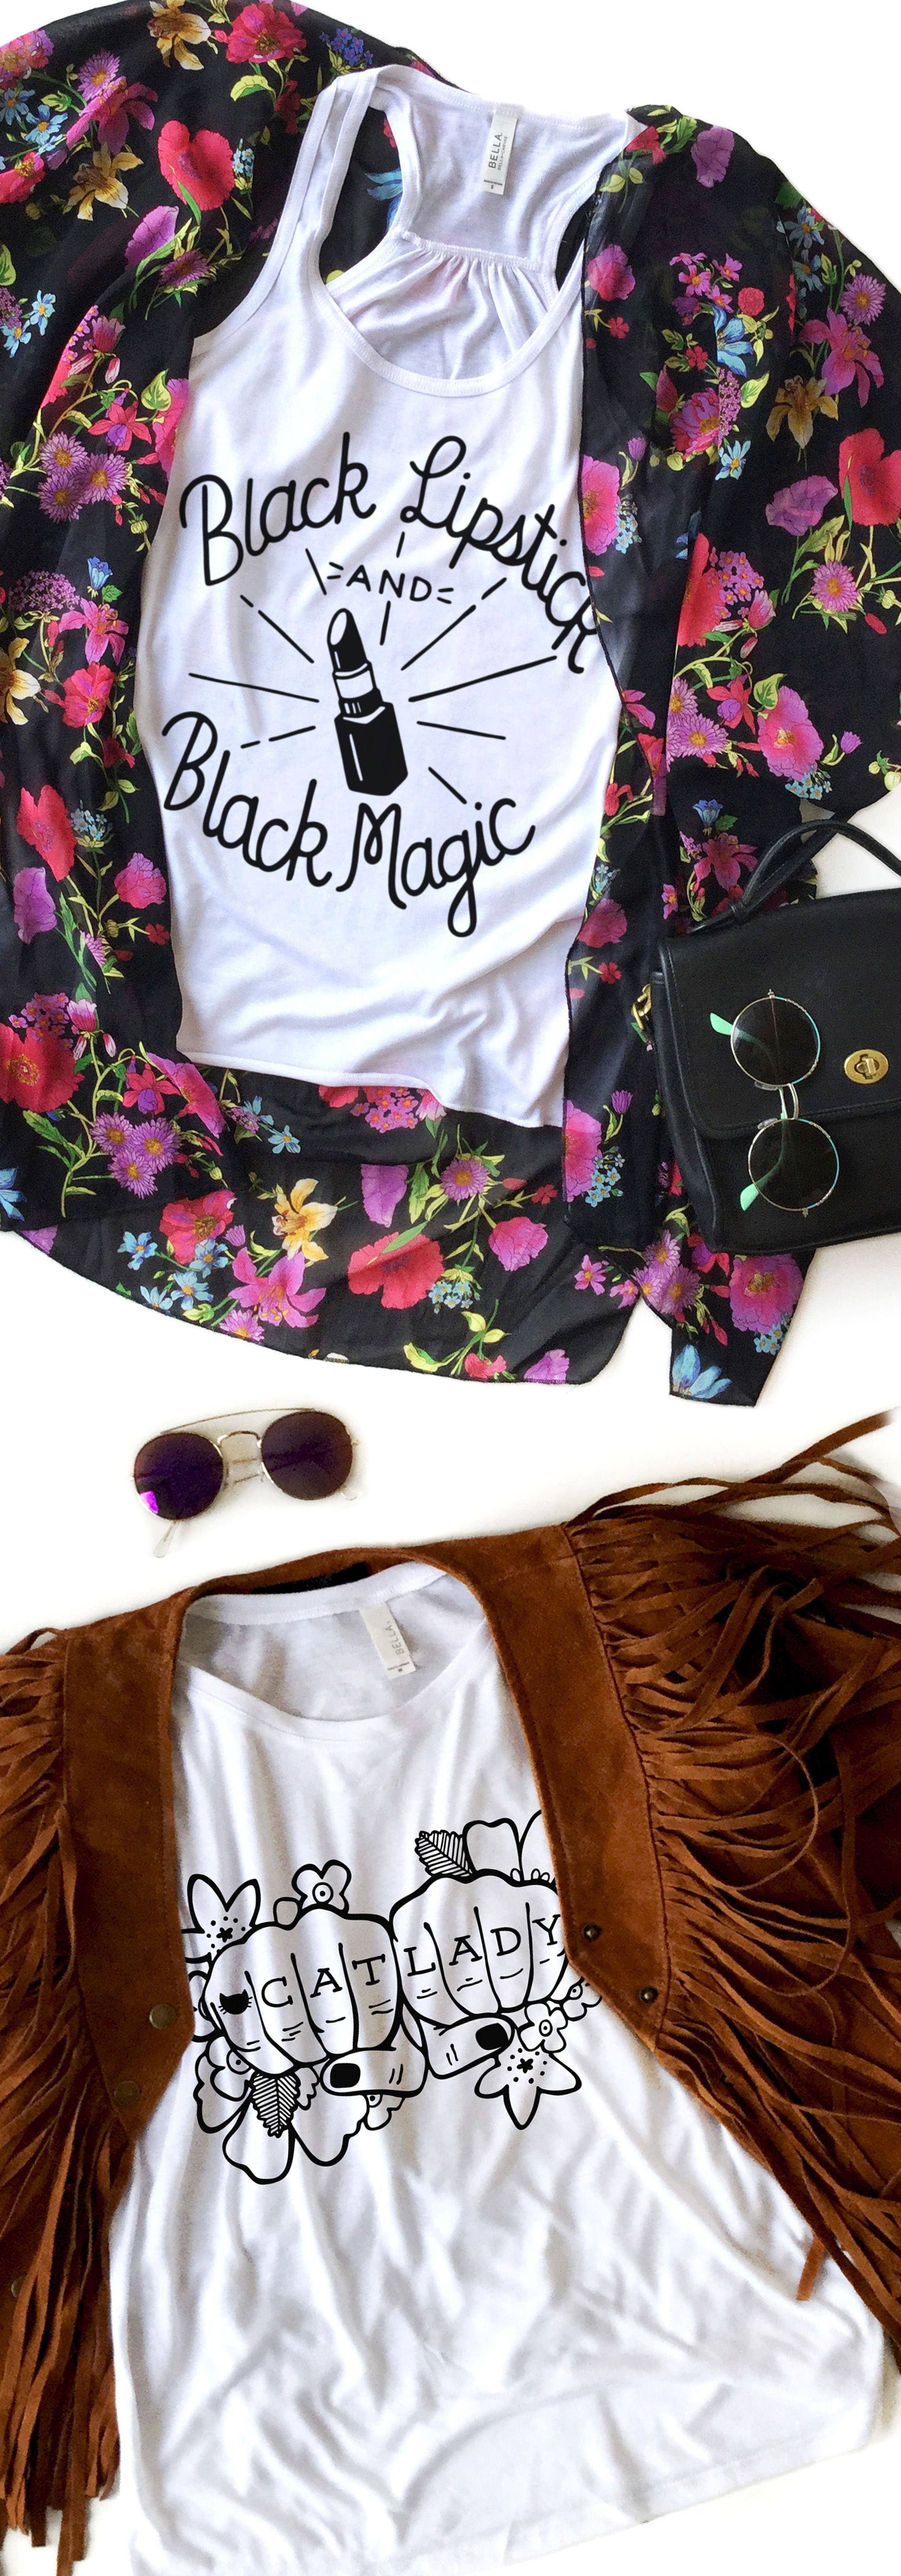 Spring outfits are all we can think about! teesandtankyou.com